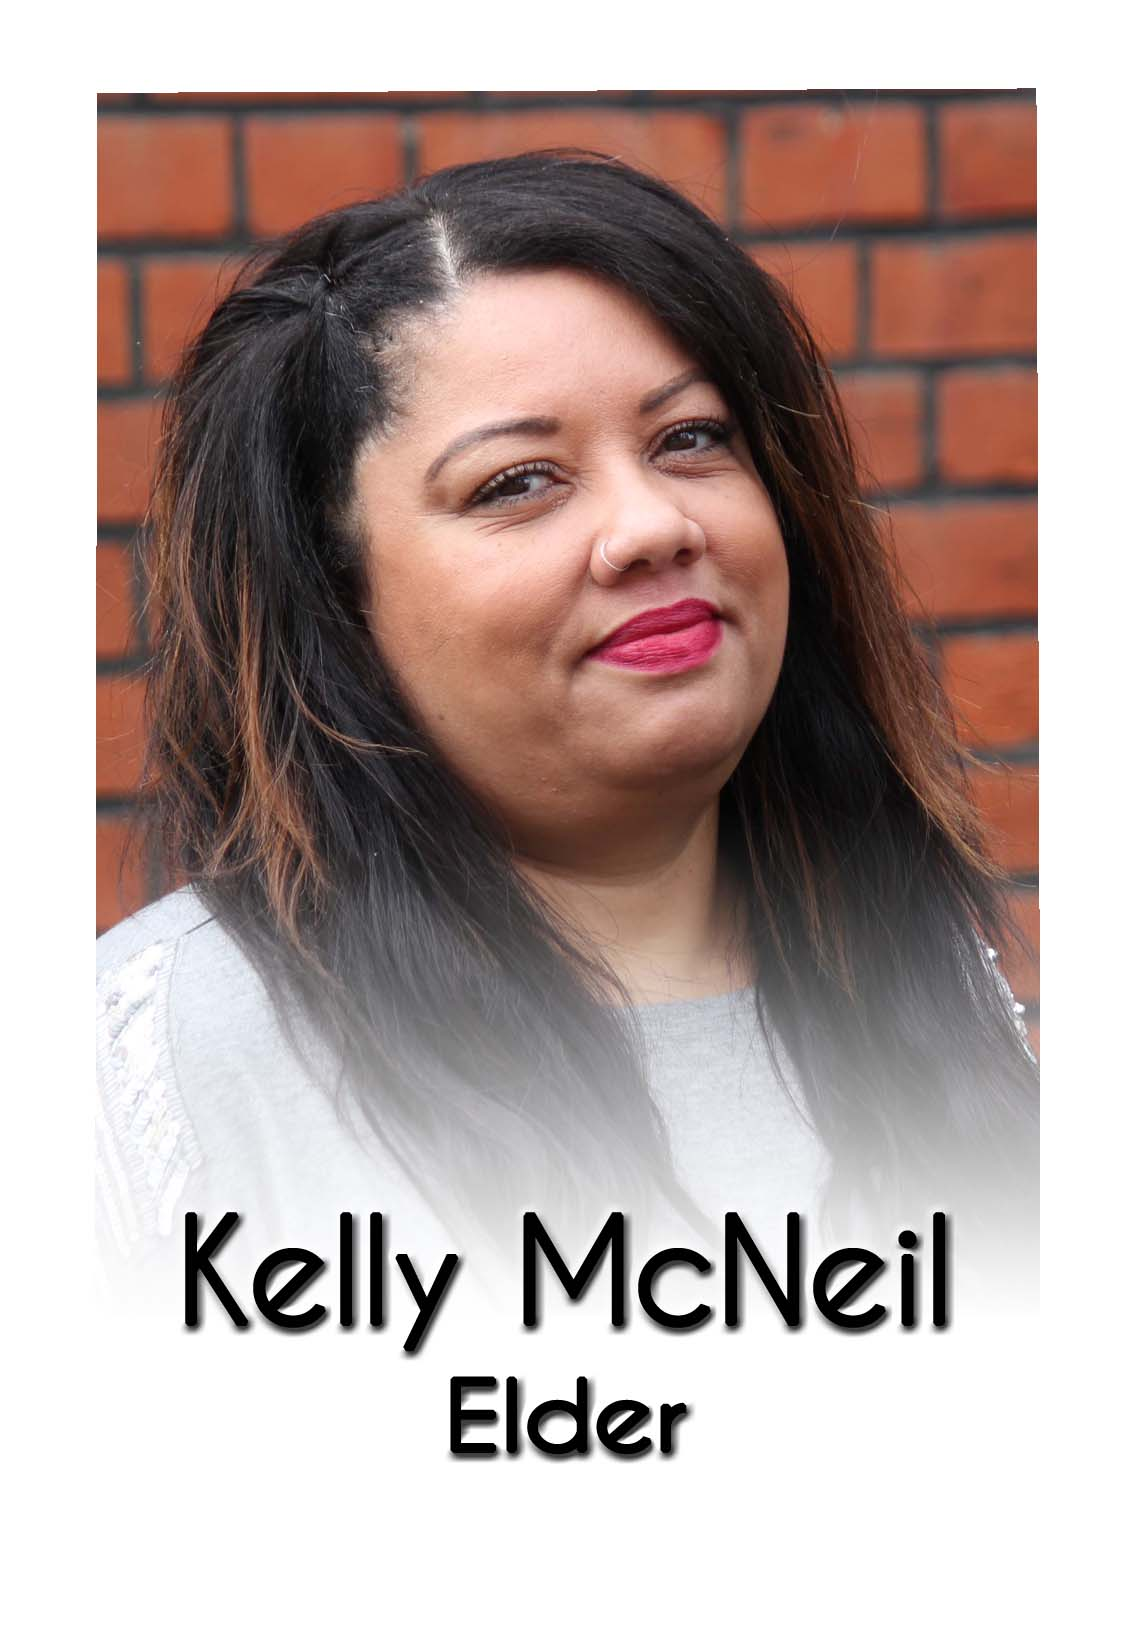 Kelly McNeil labelled